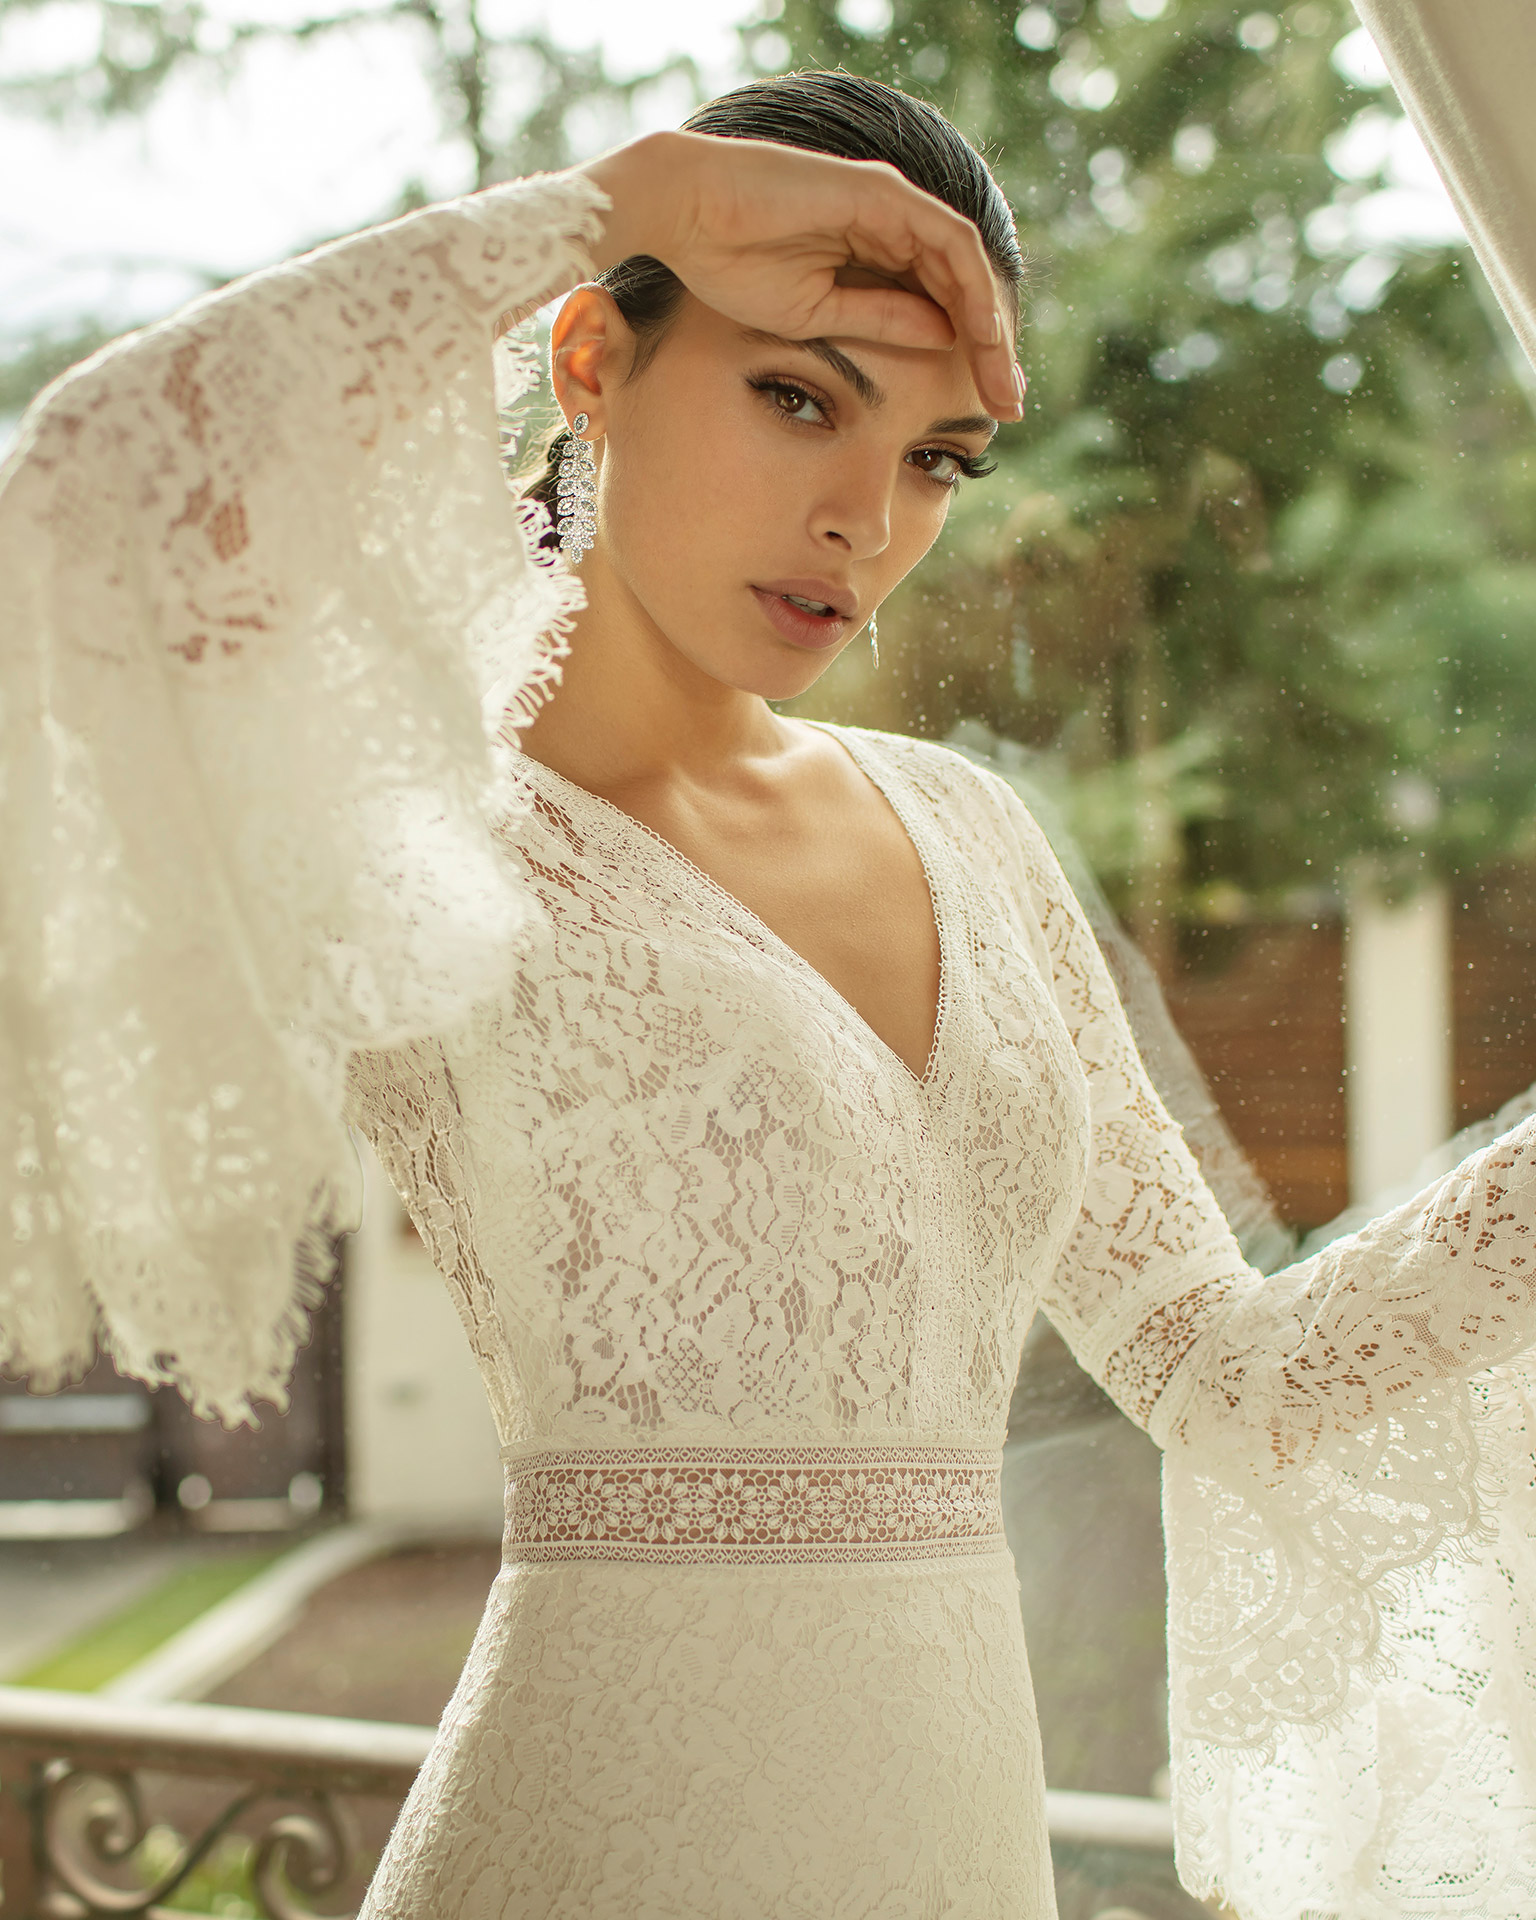 Boho-style lace wedding dress with V-neckline, low back and flounced sleeves. 2020 ALMANOVIA Collection.